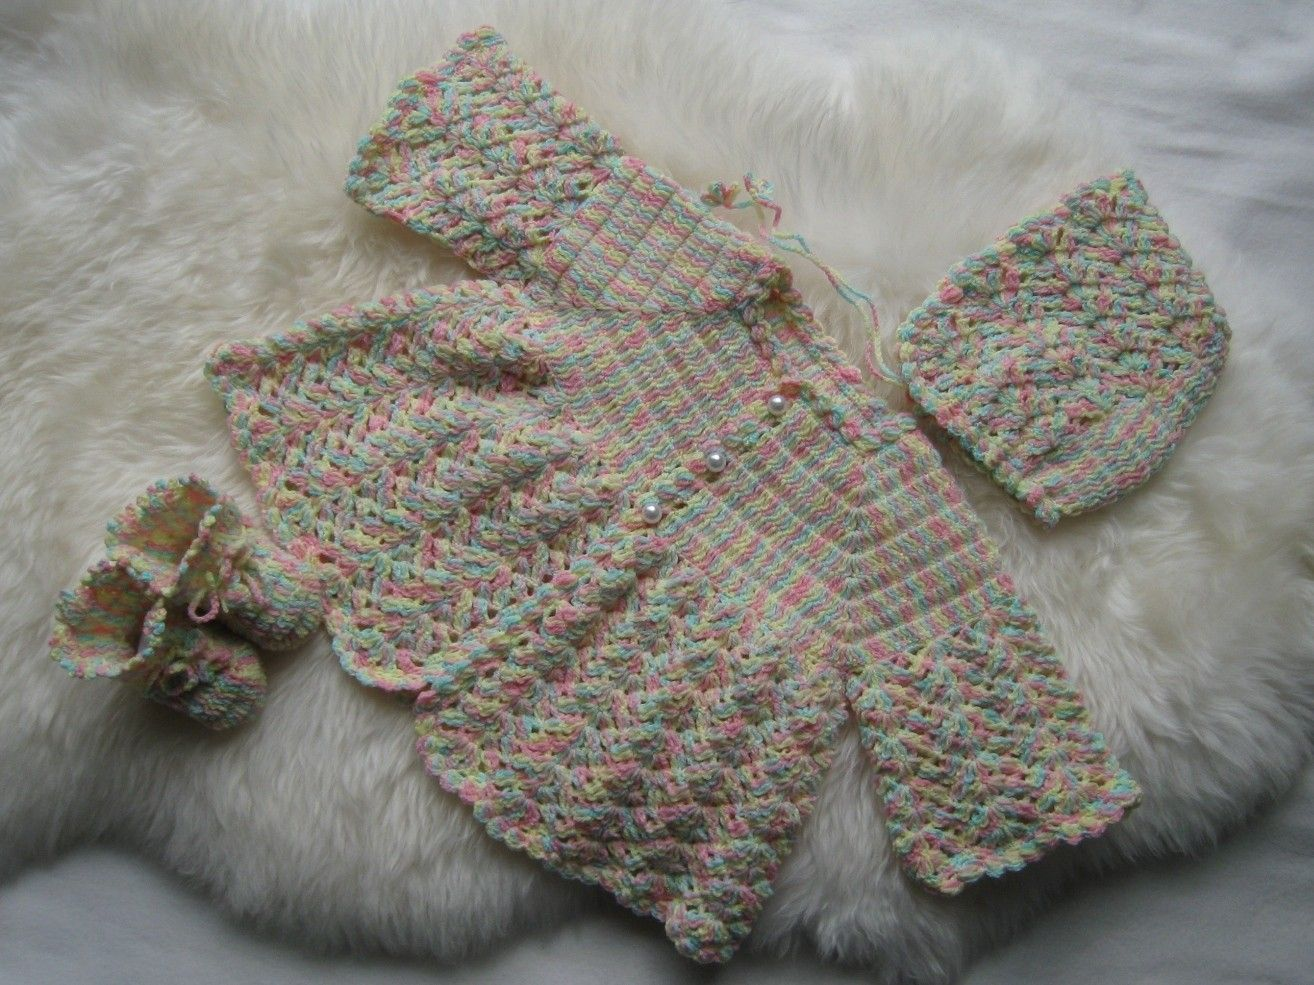 New crocheted baby set--sweater, bonnet, booties, 12M-18M | Free ...